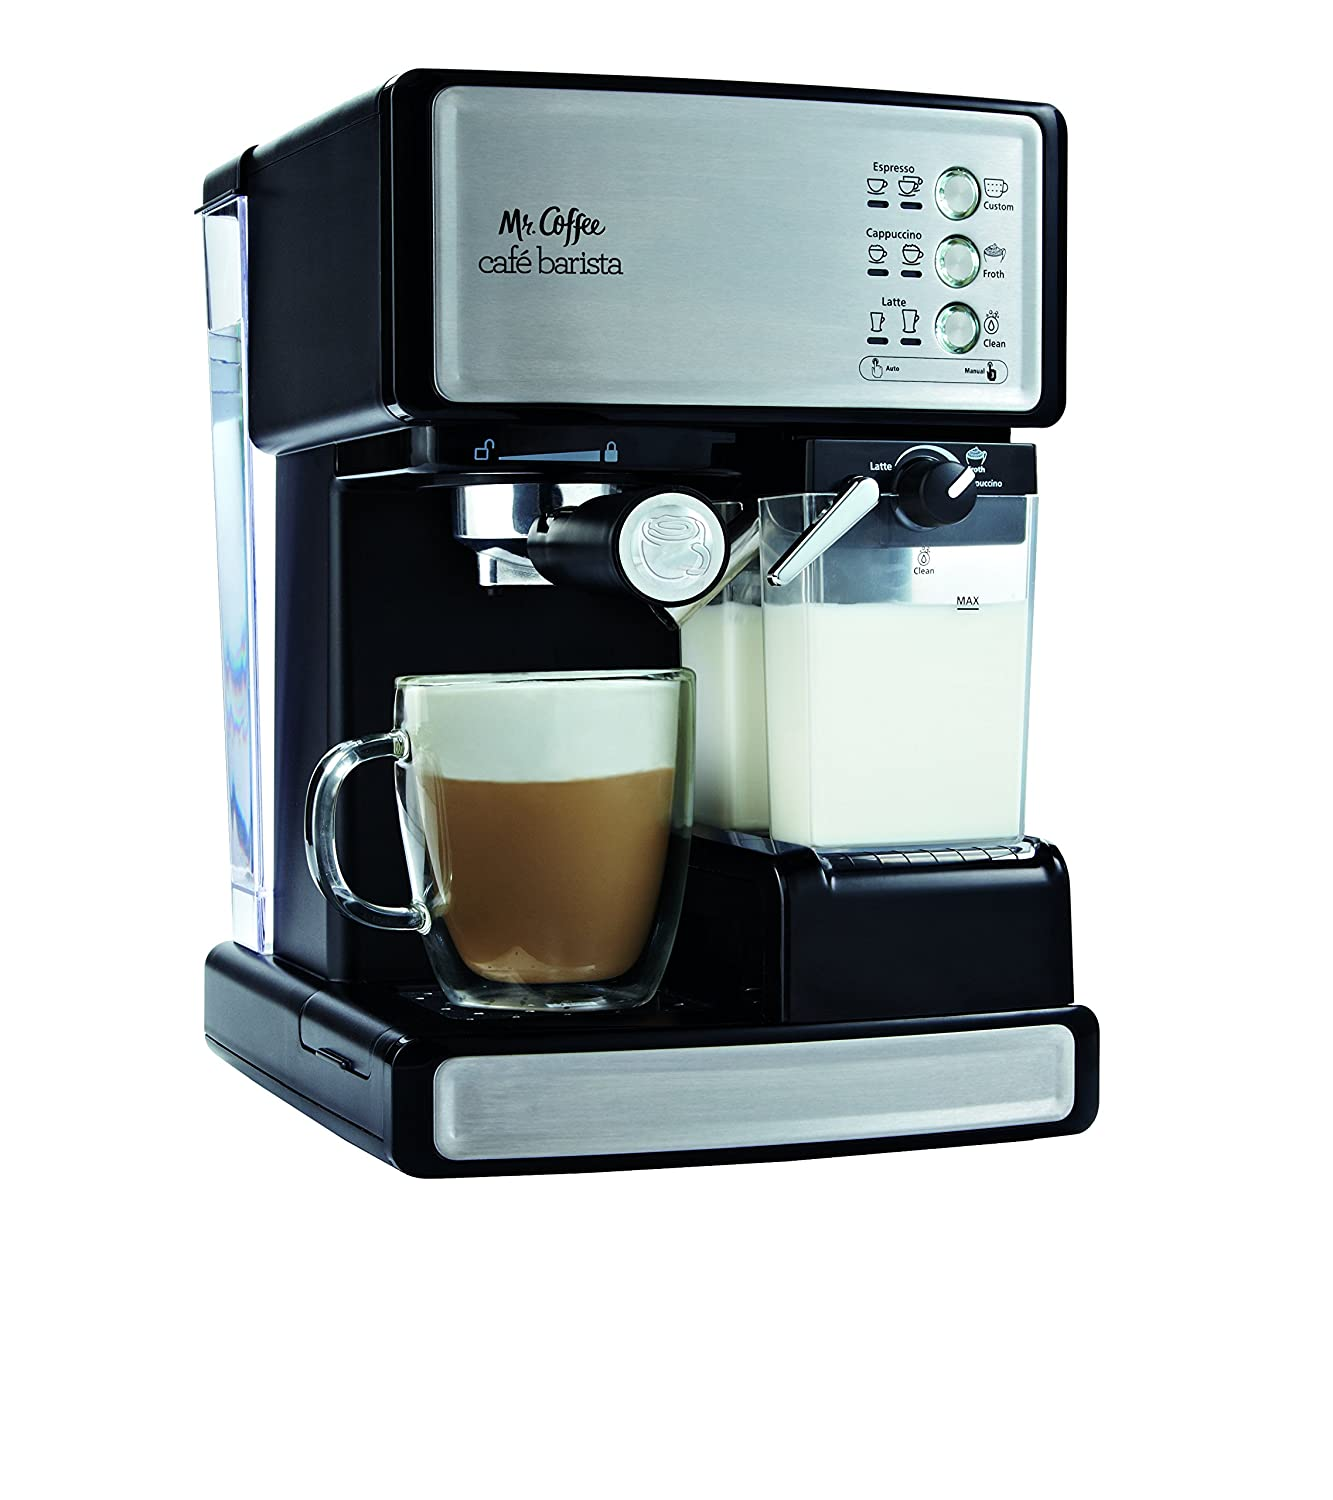 Mr. Coffee Cafe Barista Espresso Maker Review